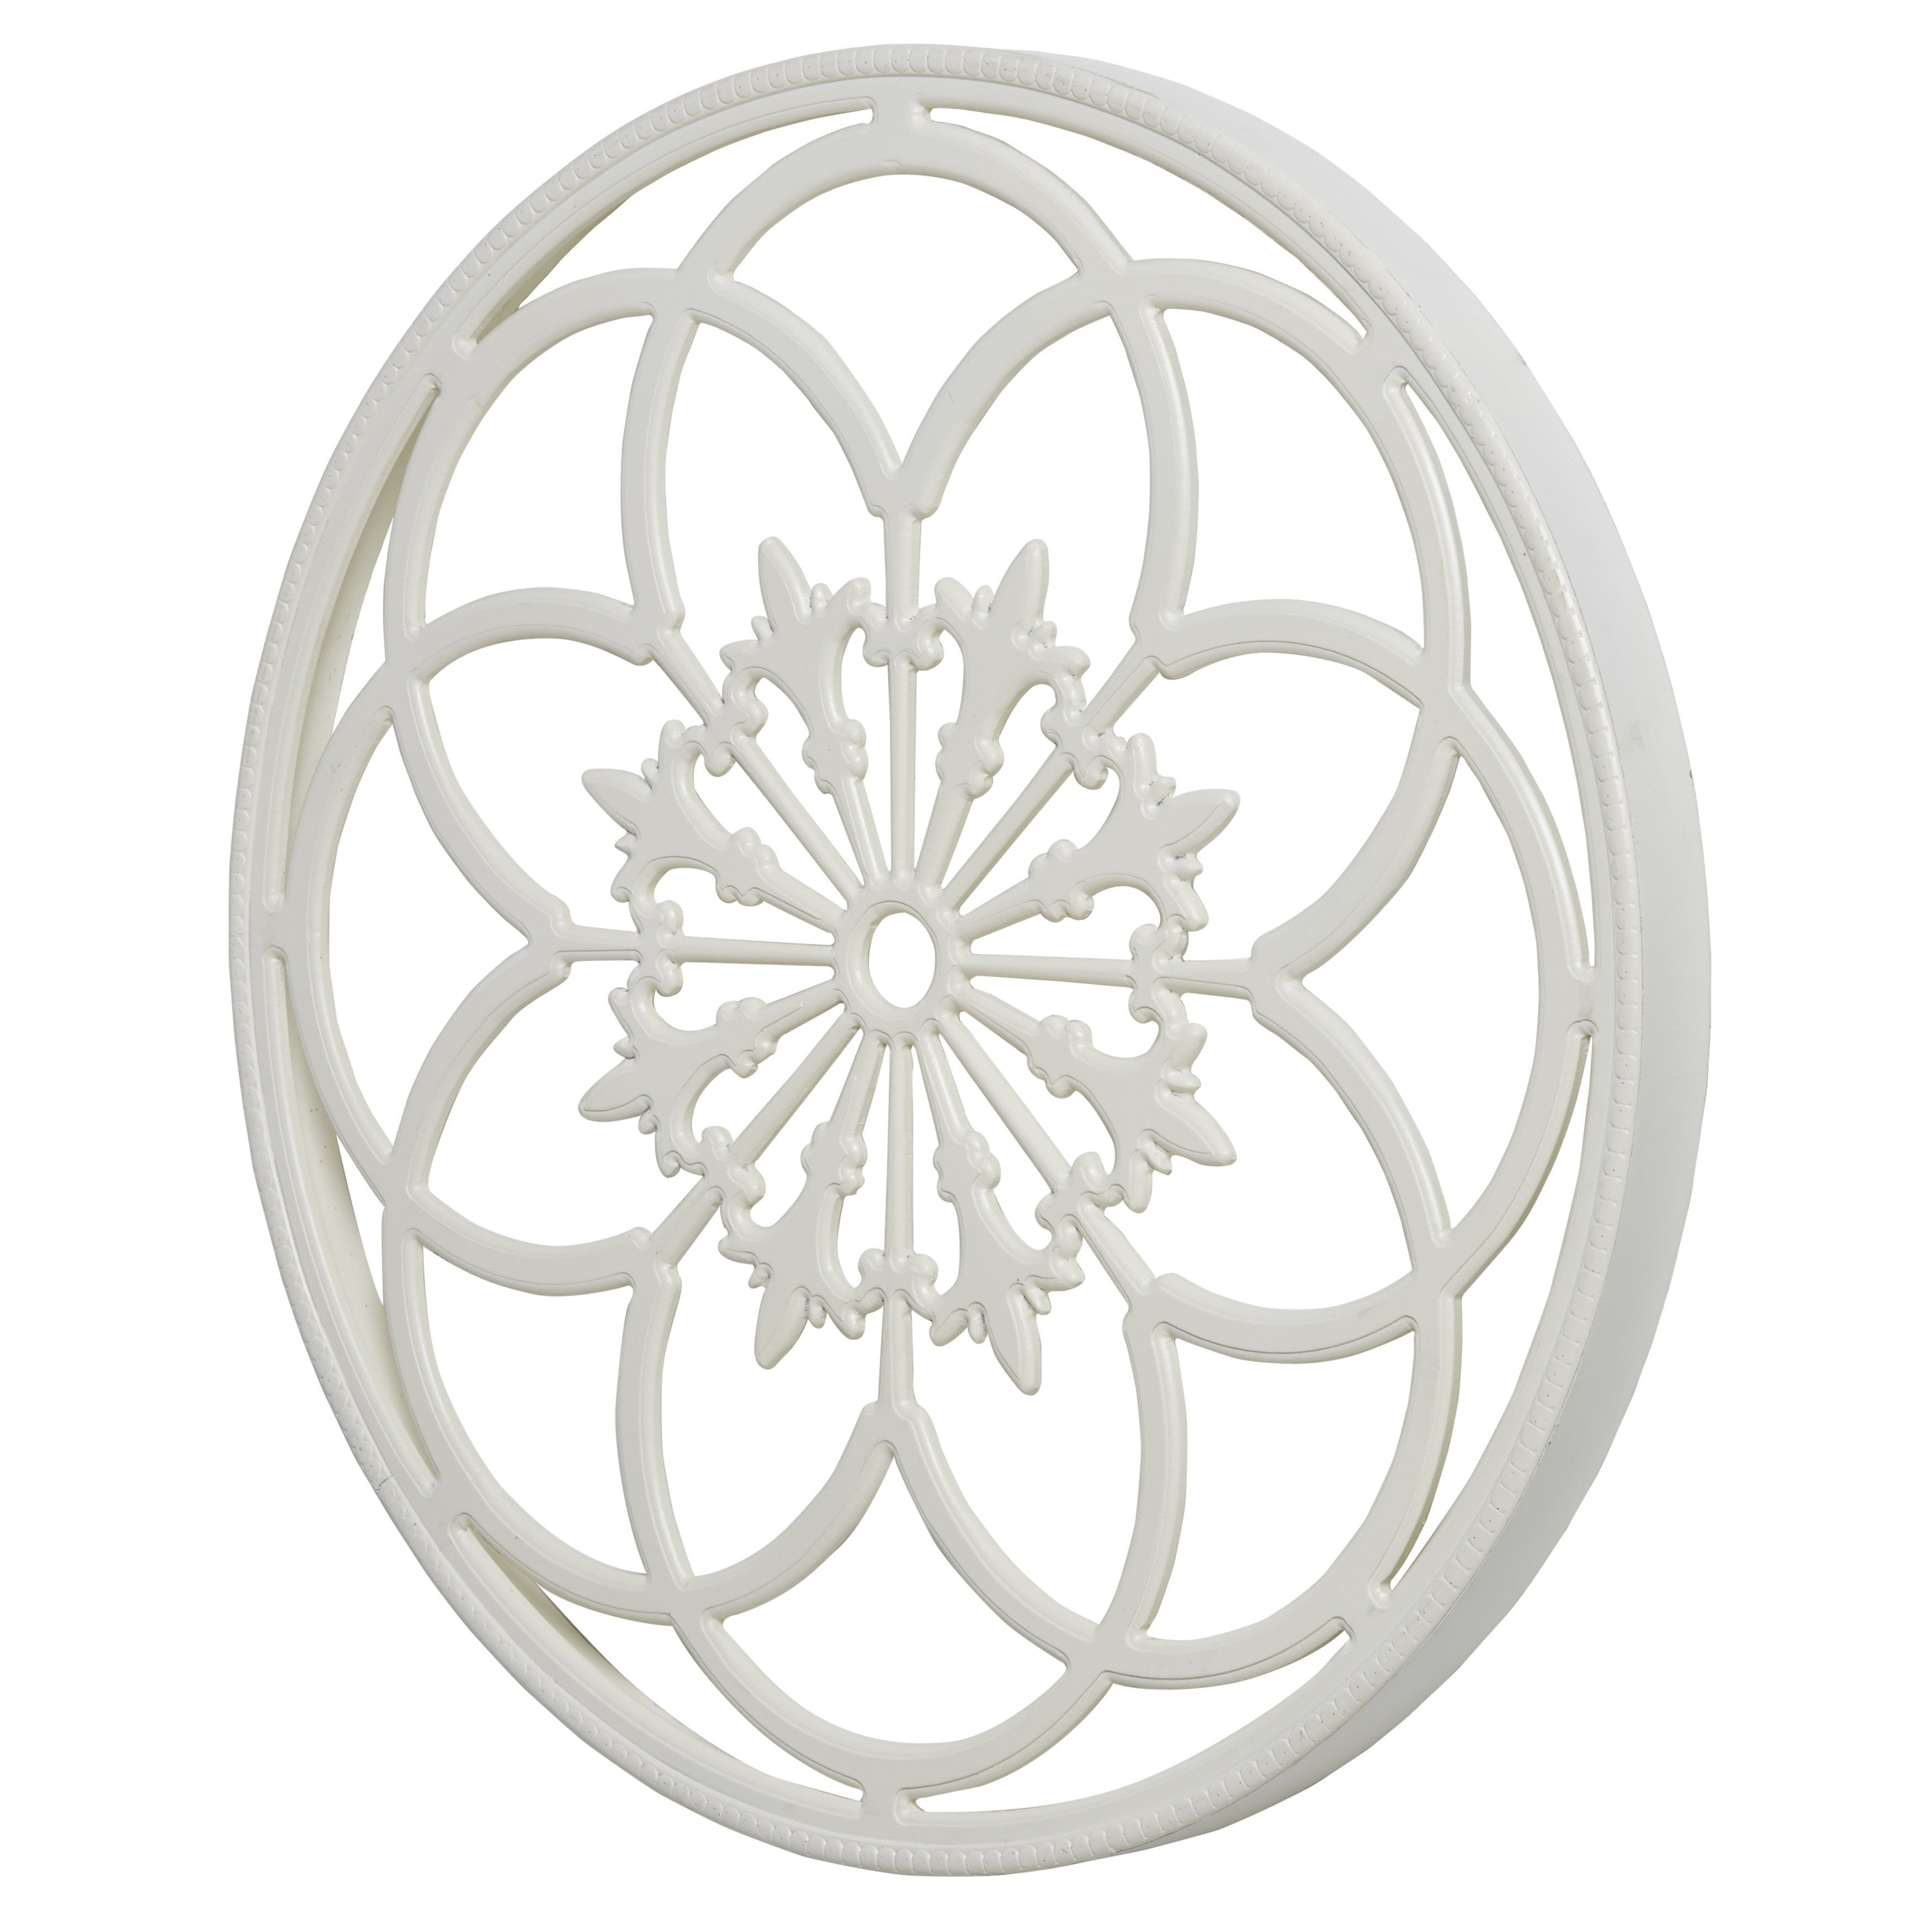 chandelier medallions fixtures medallion designs delectable ceiling light lighting for setup oval